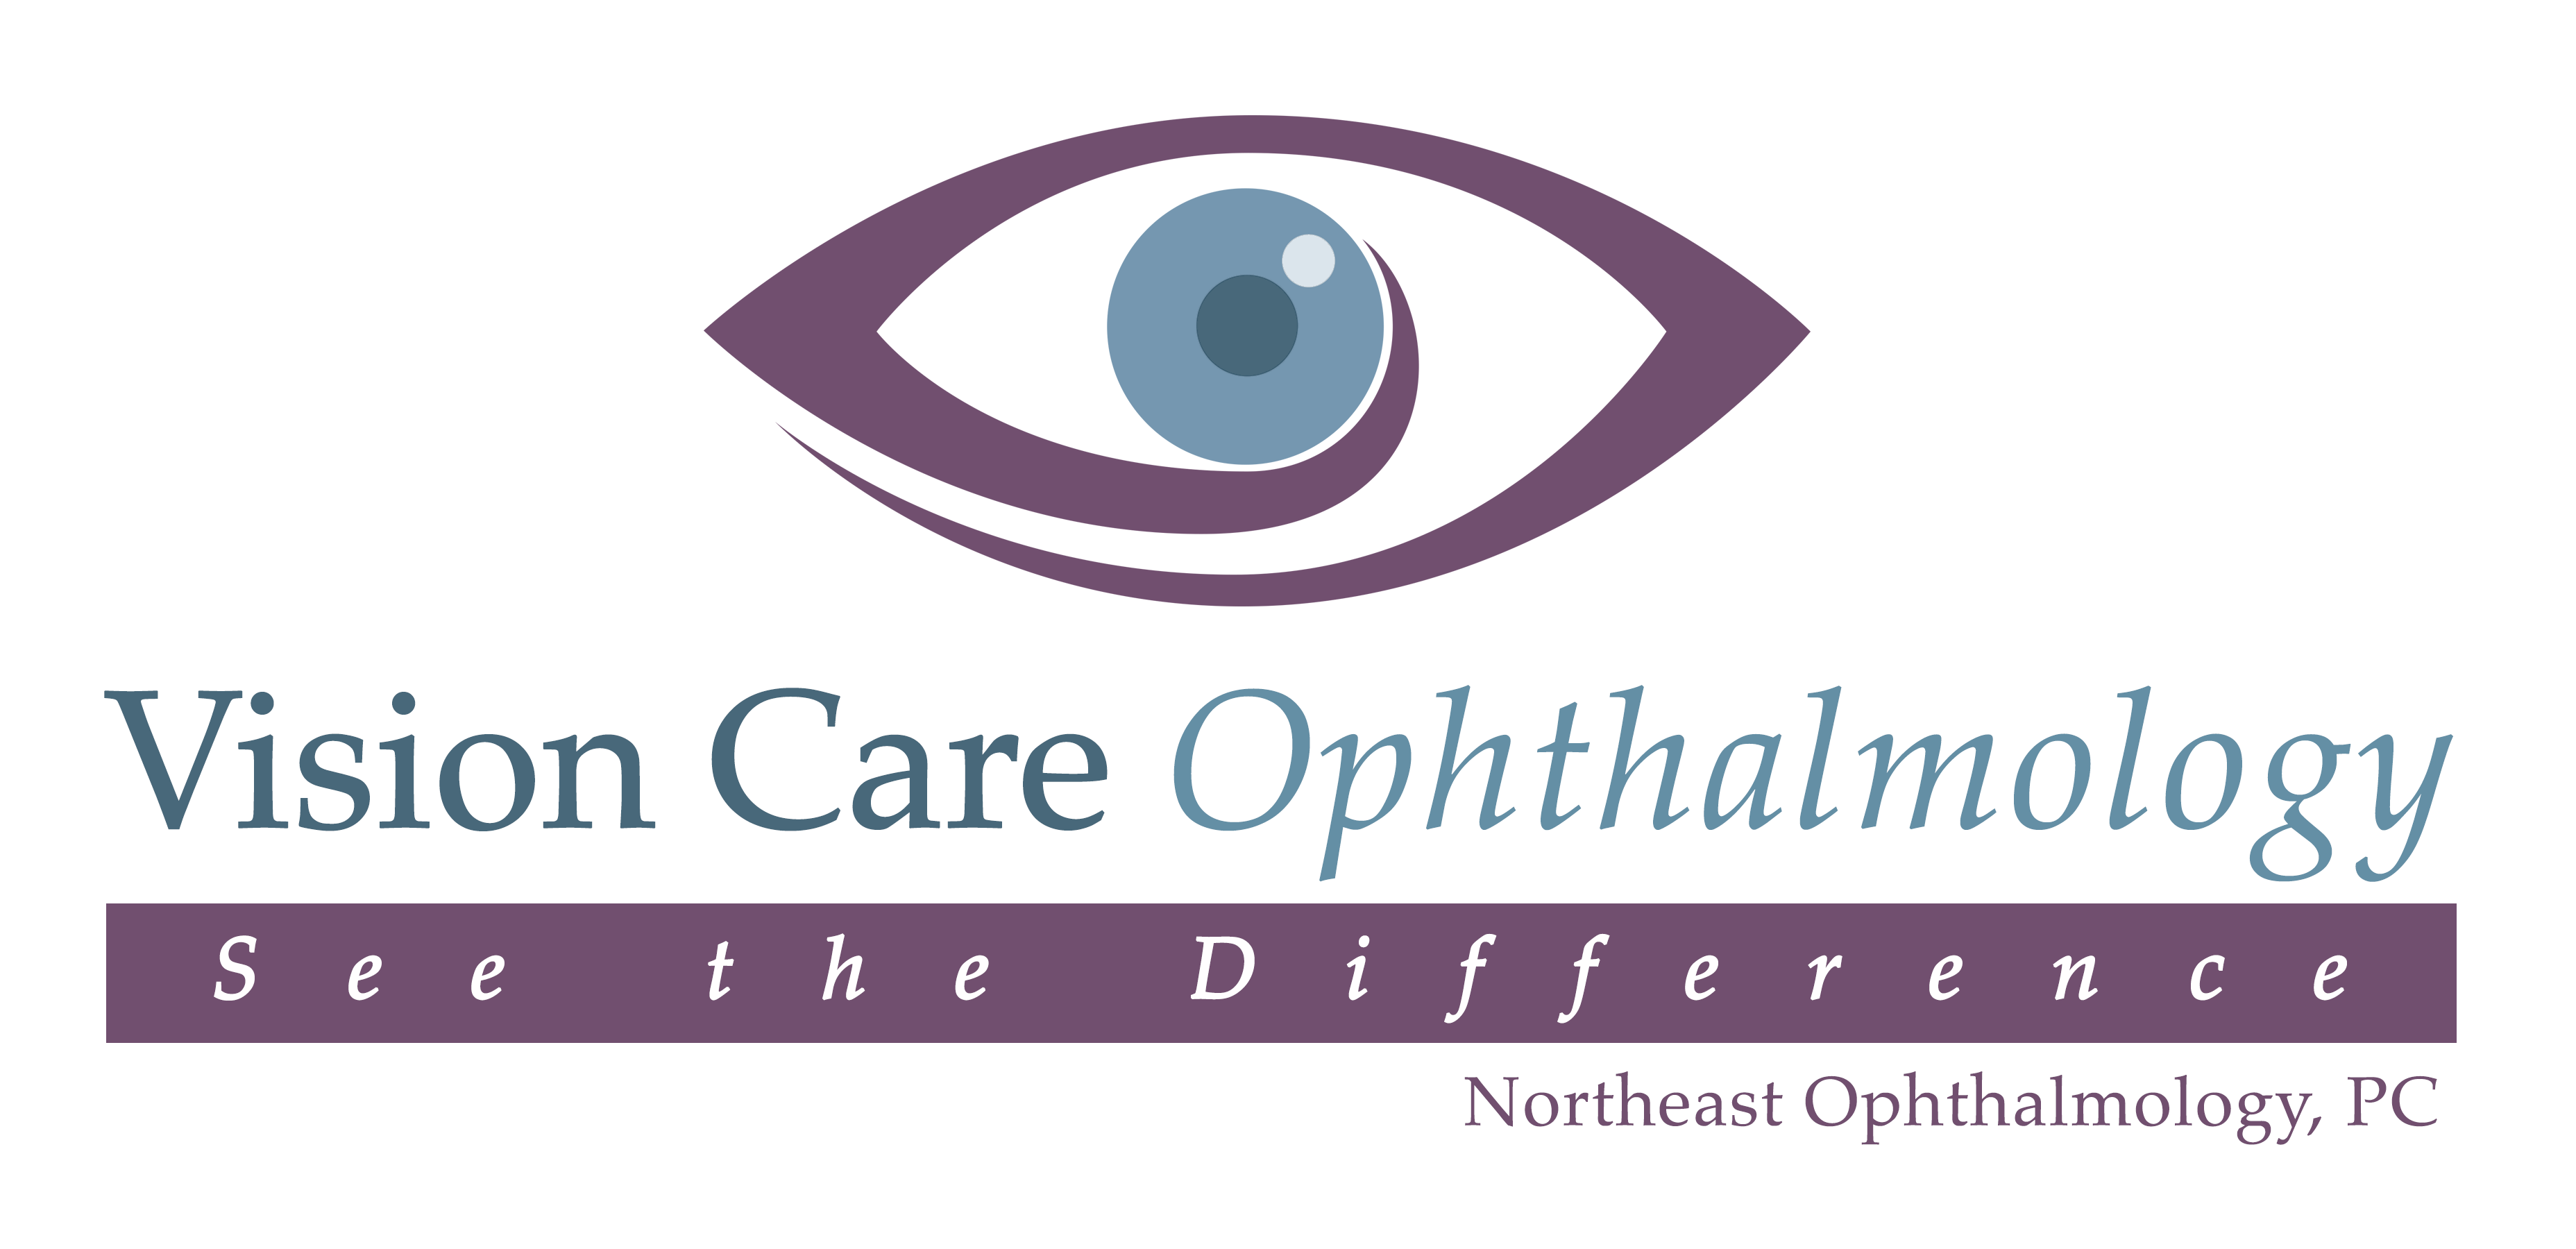 Vision Care Ophthalmology | Optometrist in Fort Wayne, IN